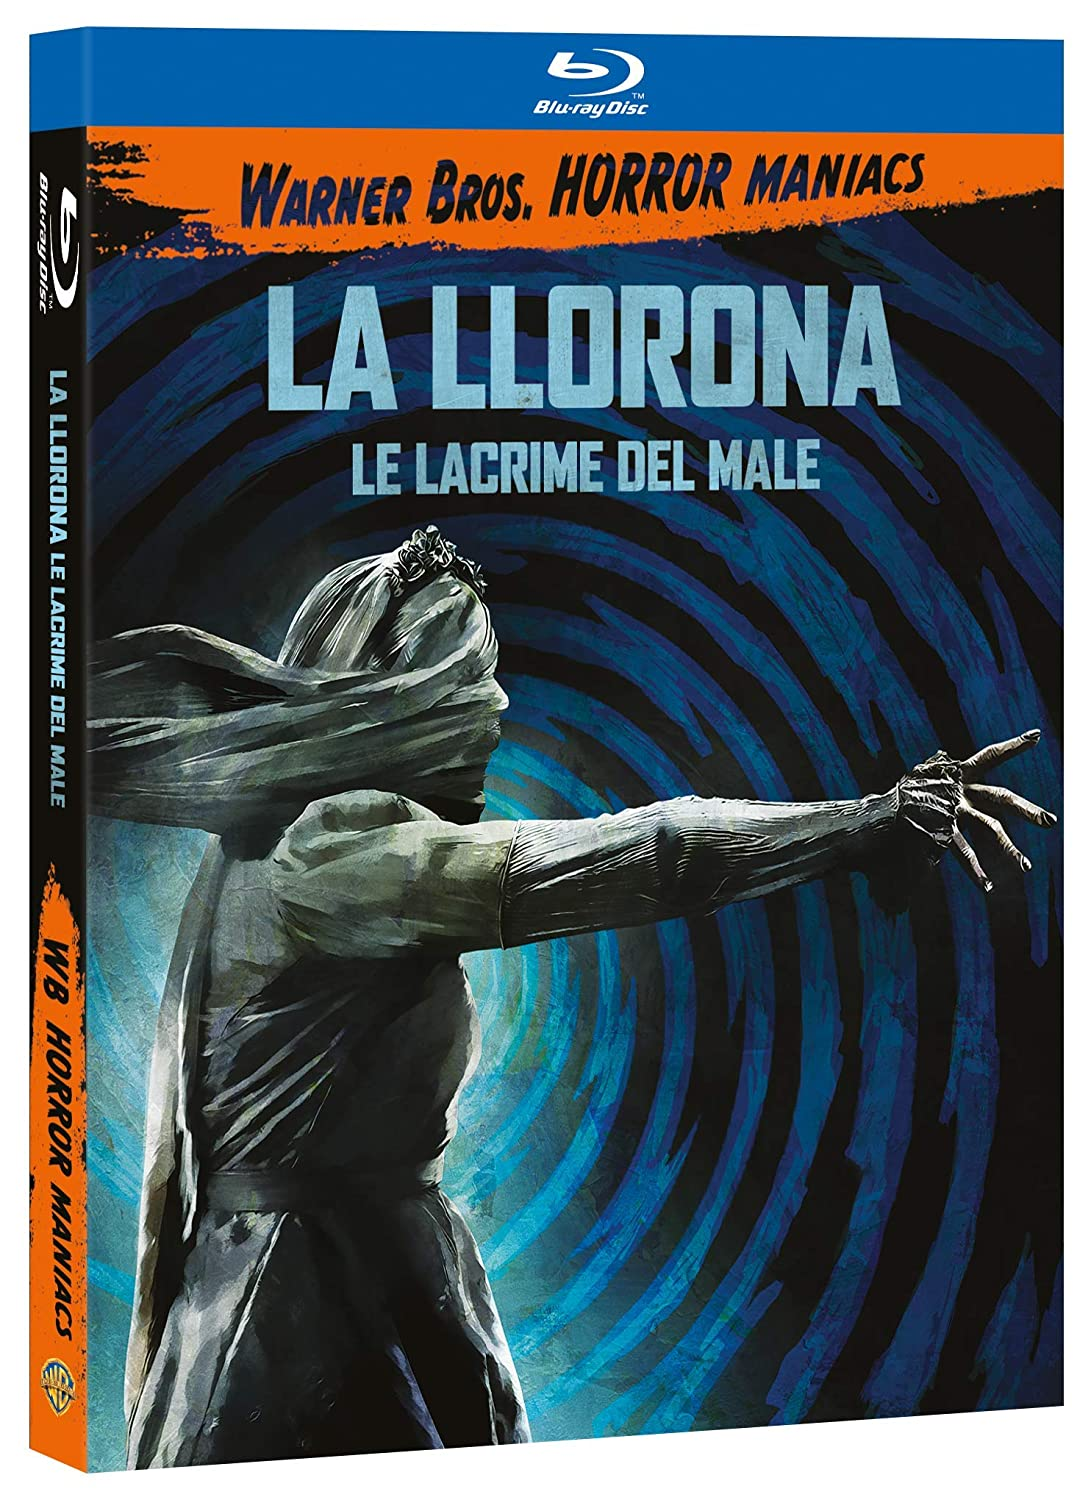 LLORONA (LA) - LE LACRIME DEL MALE (HORROR MANIACS COLLECTION) -